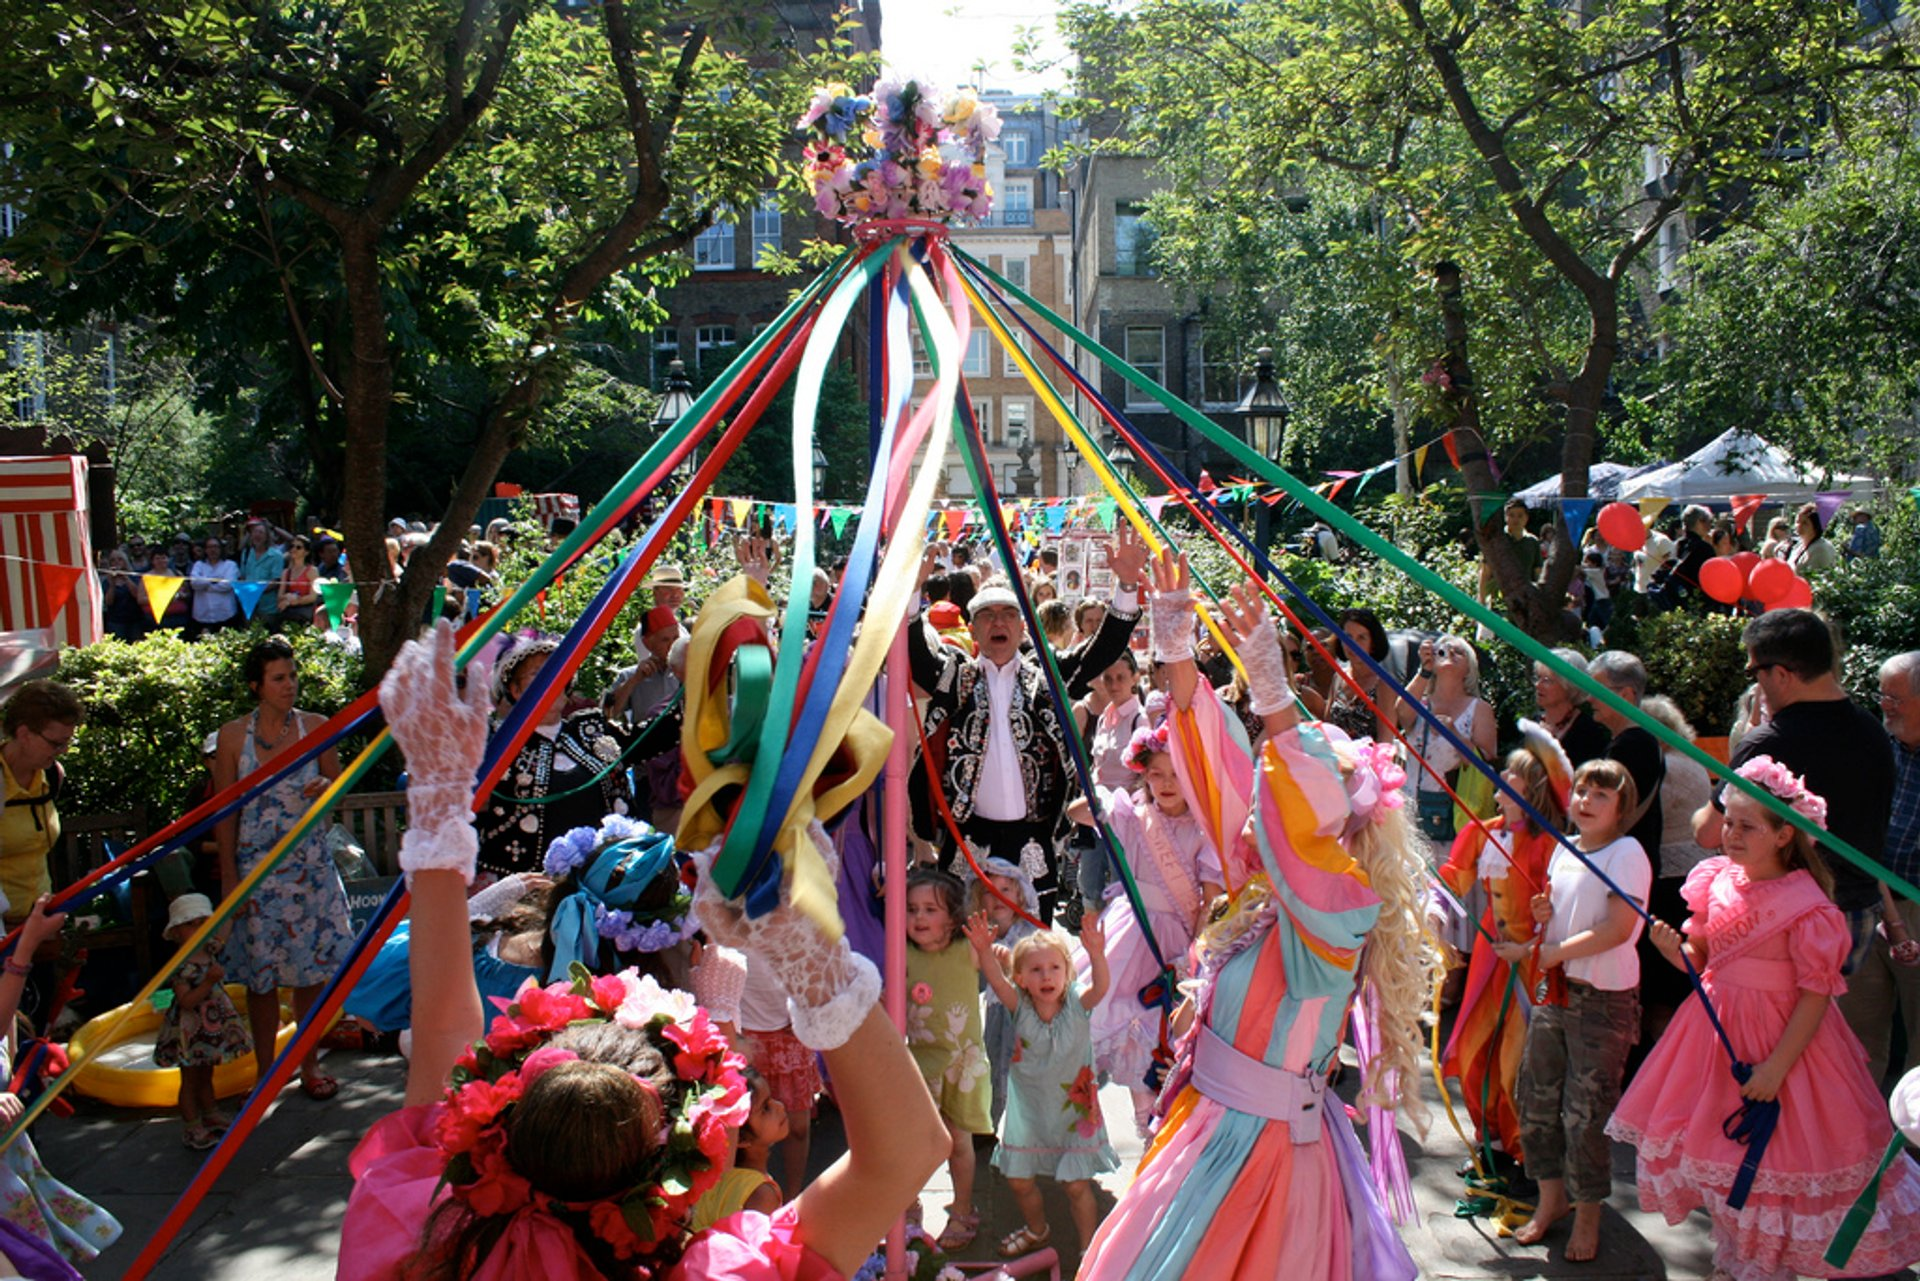 Covent Garden May Fayre and Puppet Festival in London 2019 - Best Time